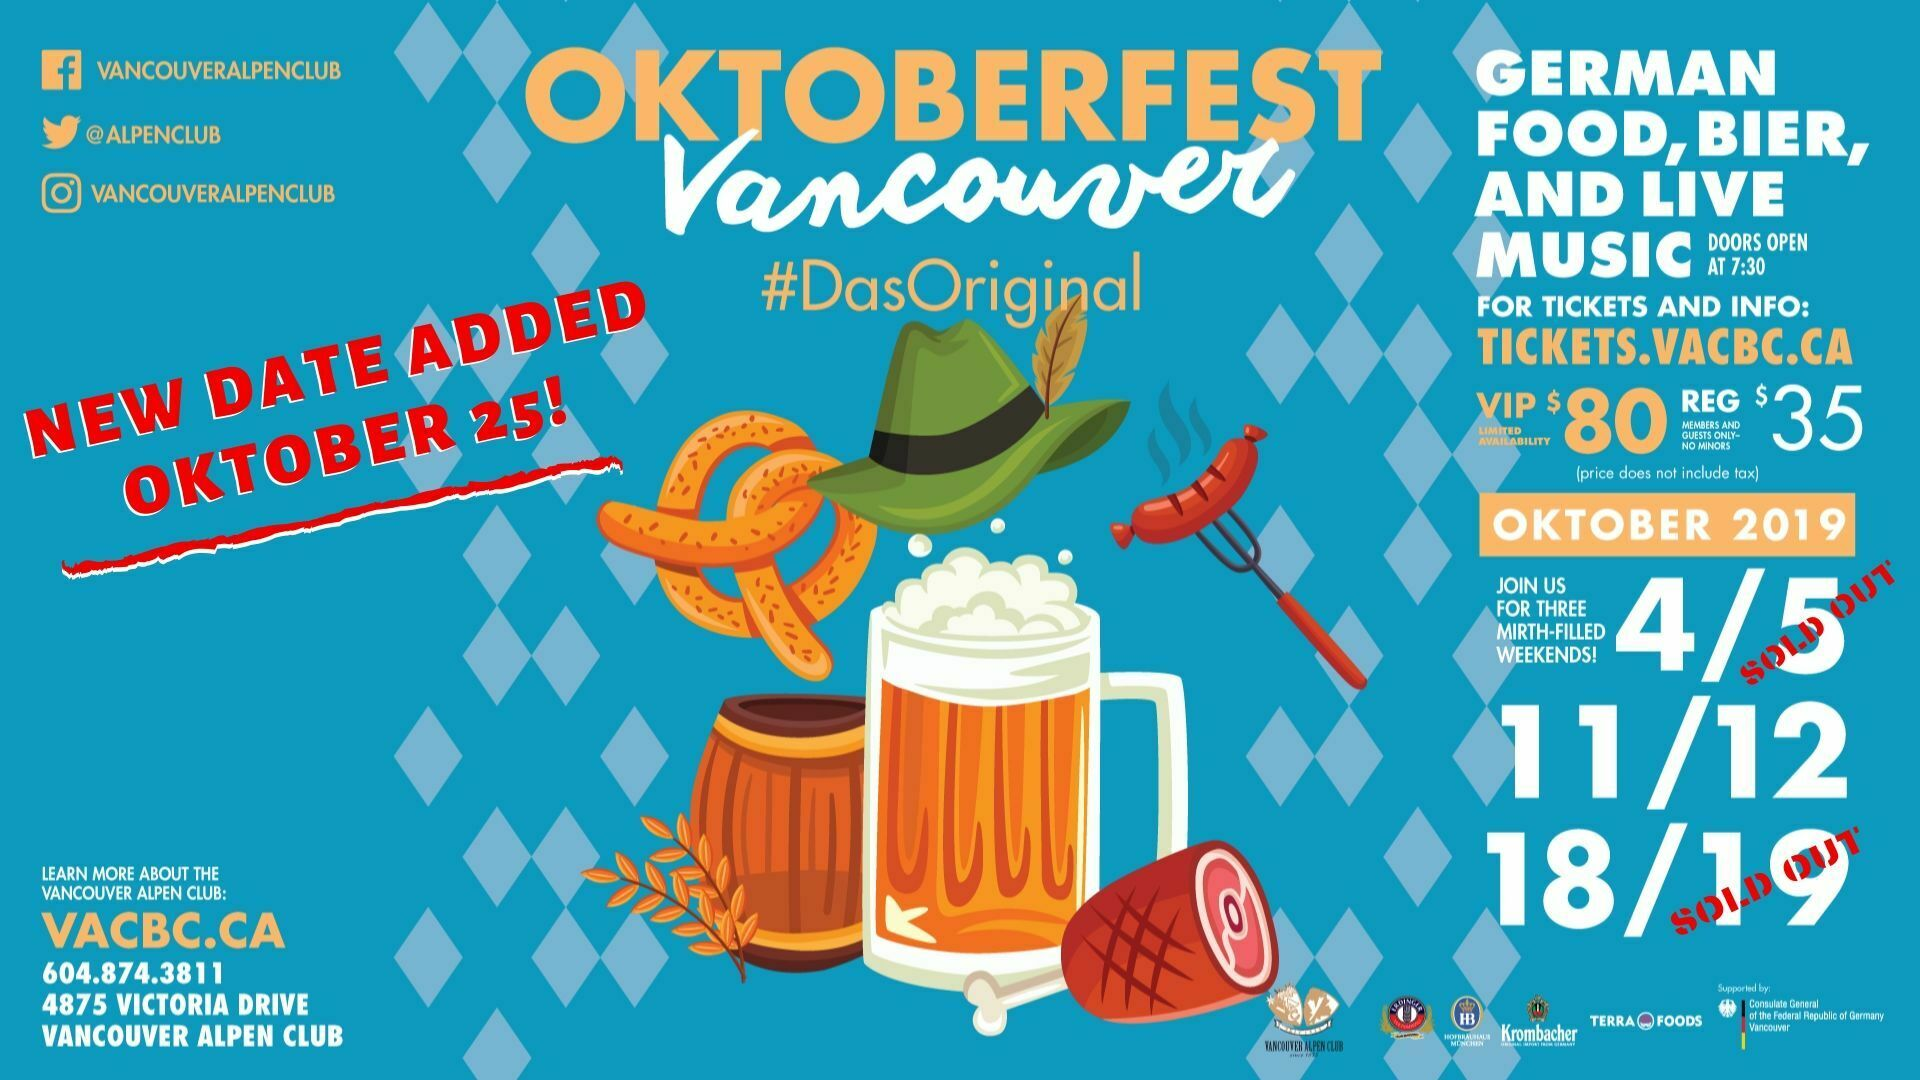 New Date Added For Oktoberfest 2019 – October 25th!